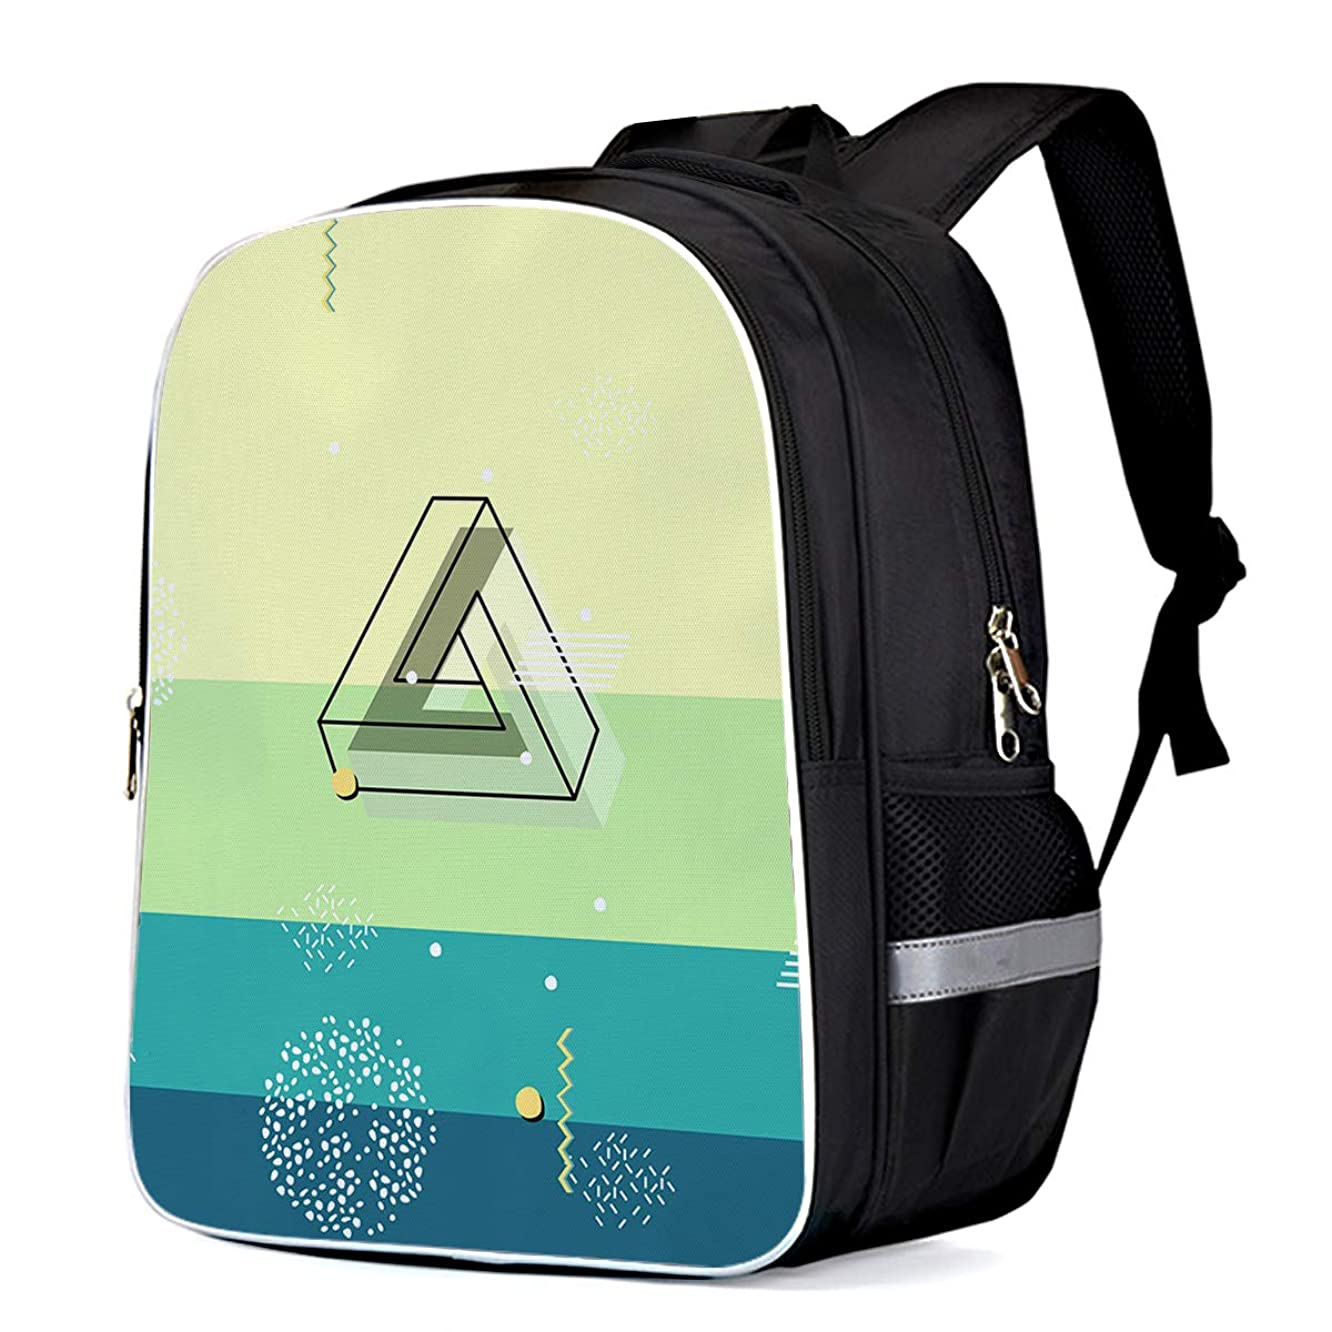 Penrose triangle Print Durable Casual Backpack Back to School Book Bag